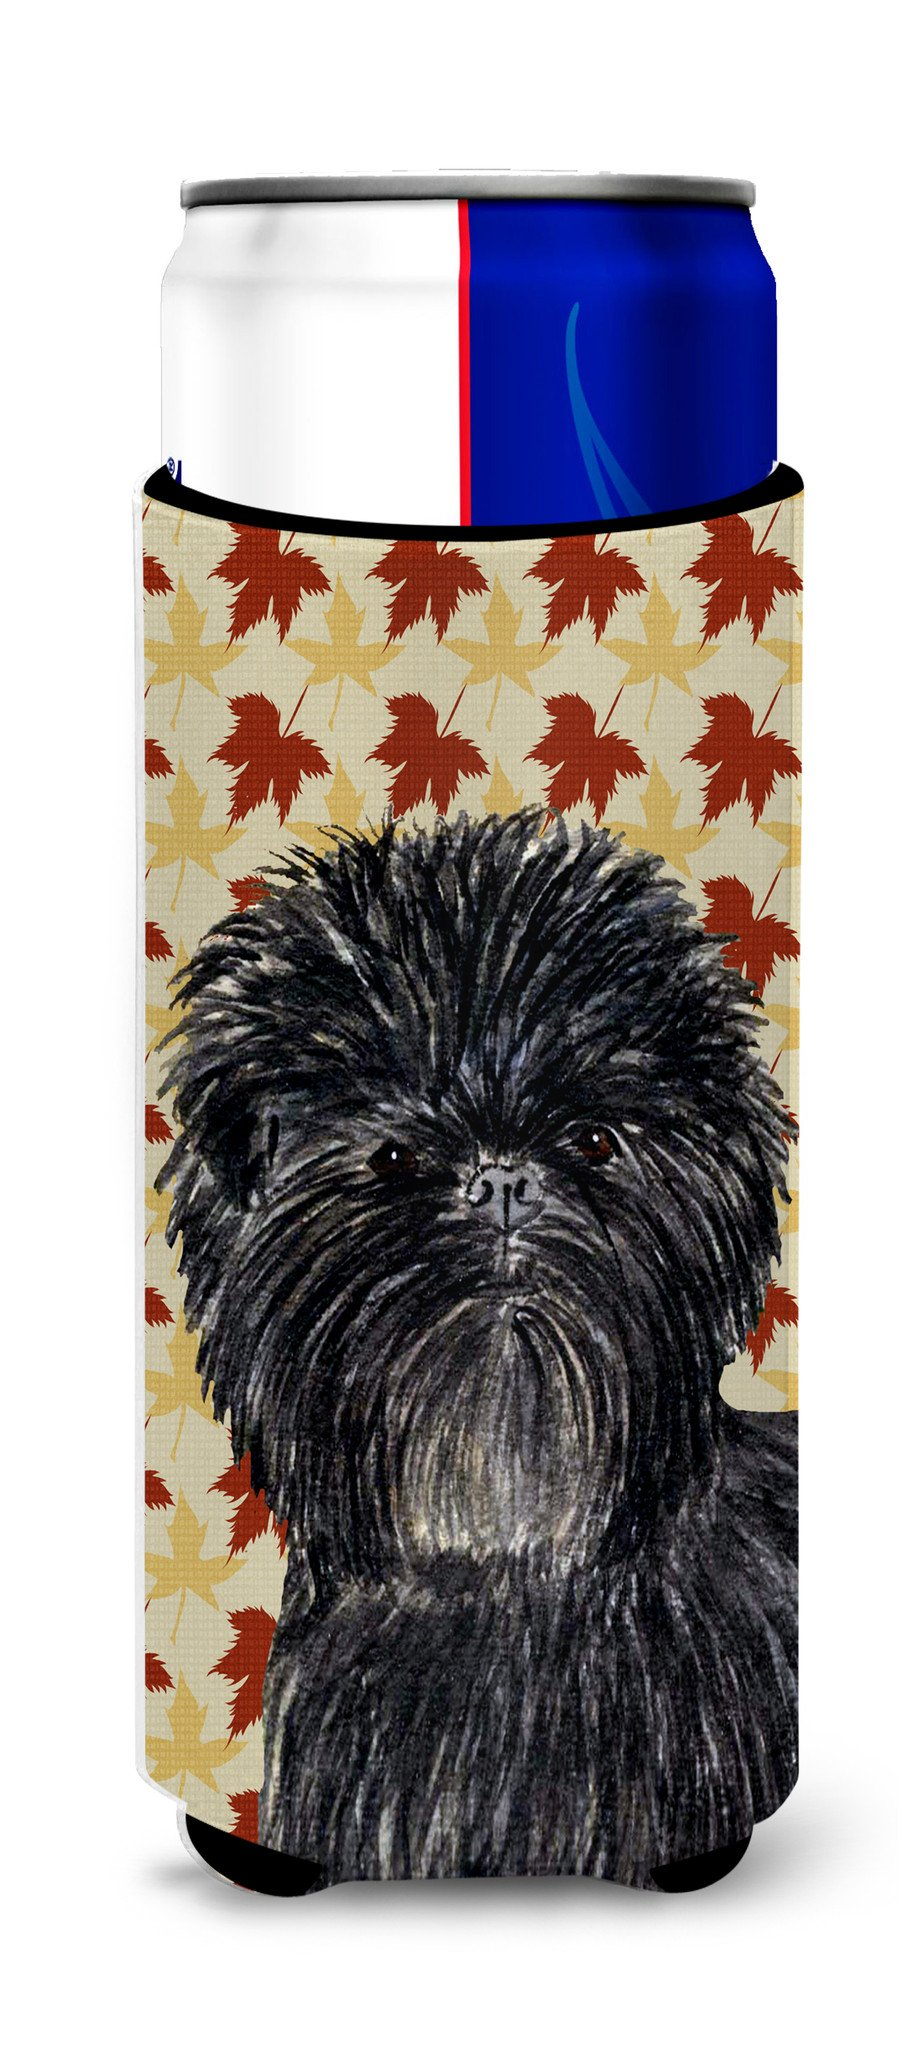 Affenpinscher Fall Leaves Portrait Ultra Beverage Insulators for slim cans SS4345MUK by Caroline's Treasures